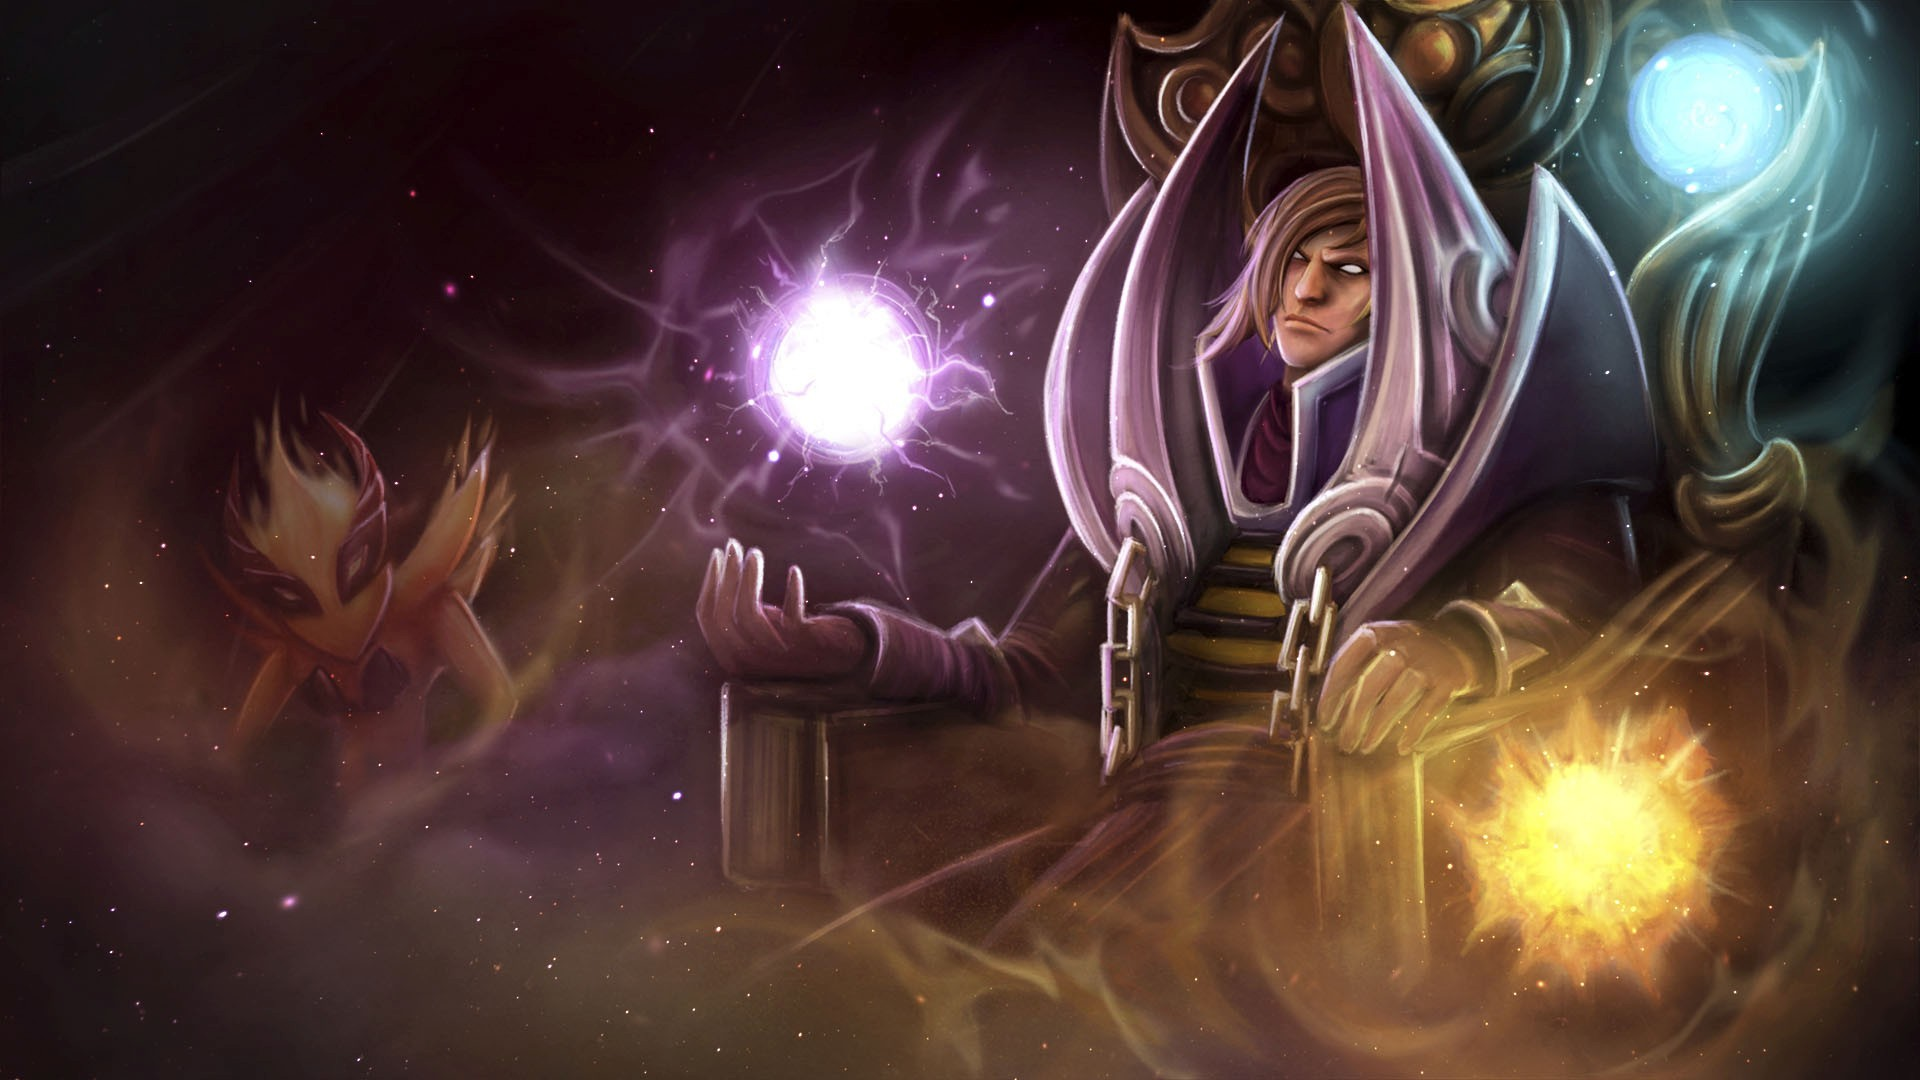 Dota 2 HD Wallpaper 1920x1080 (78+ images)